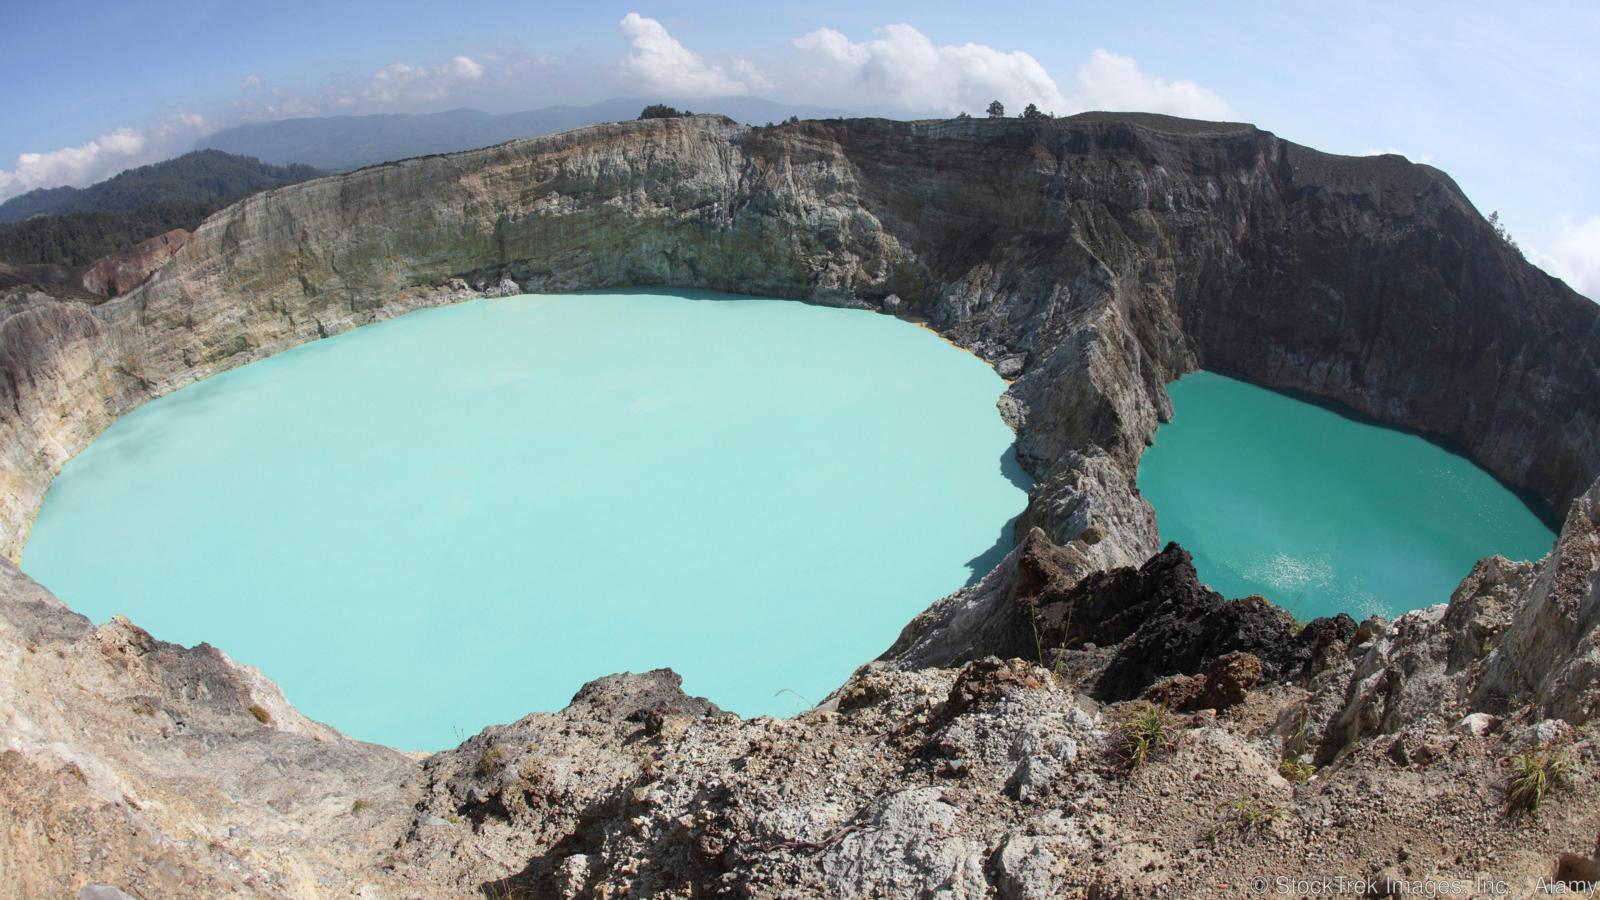 Colourful crater lakes of Kelimutu volcano, Flores Island, Indonesia.